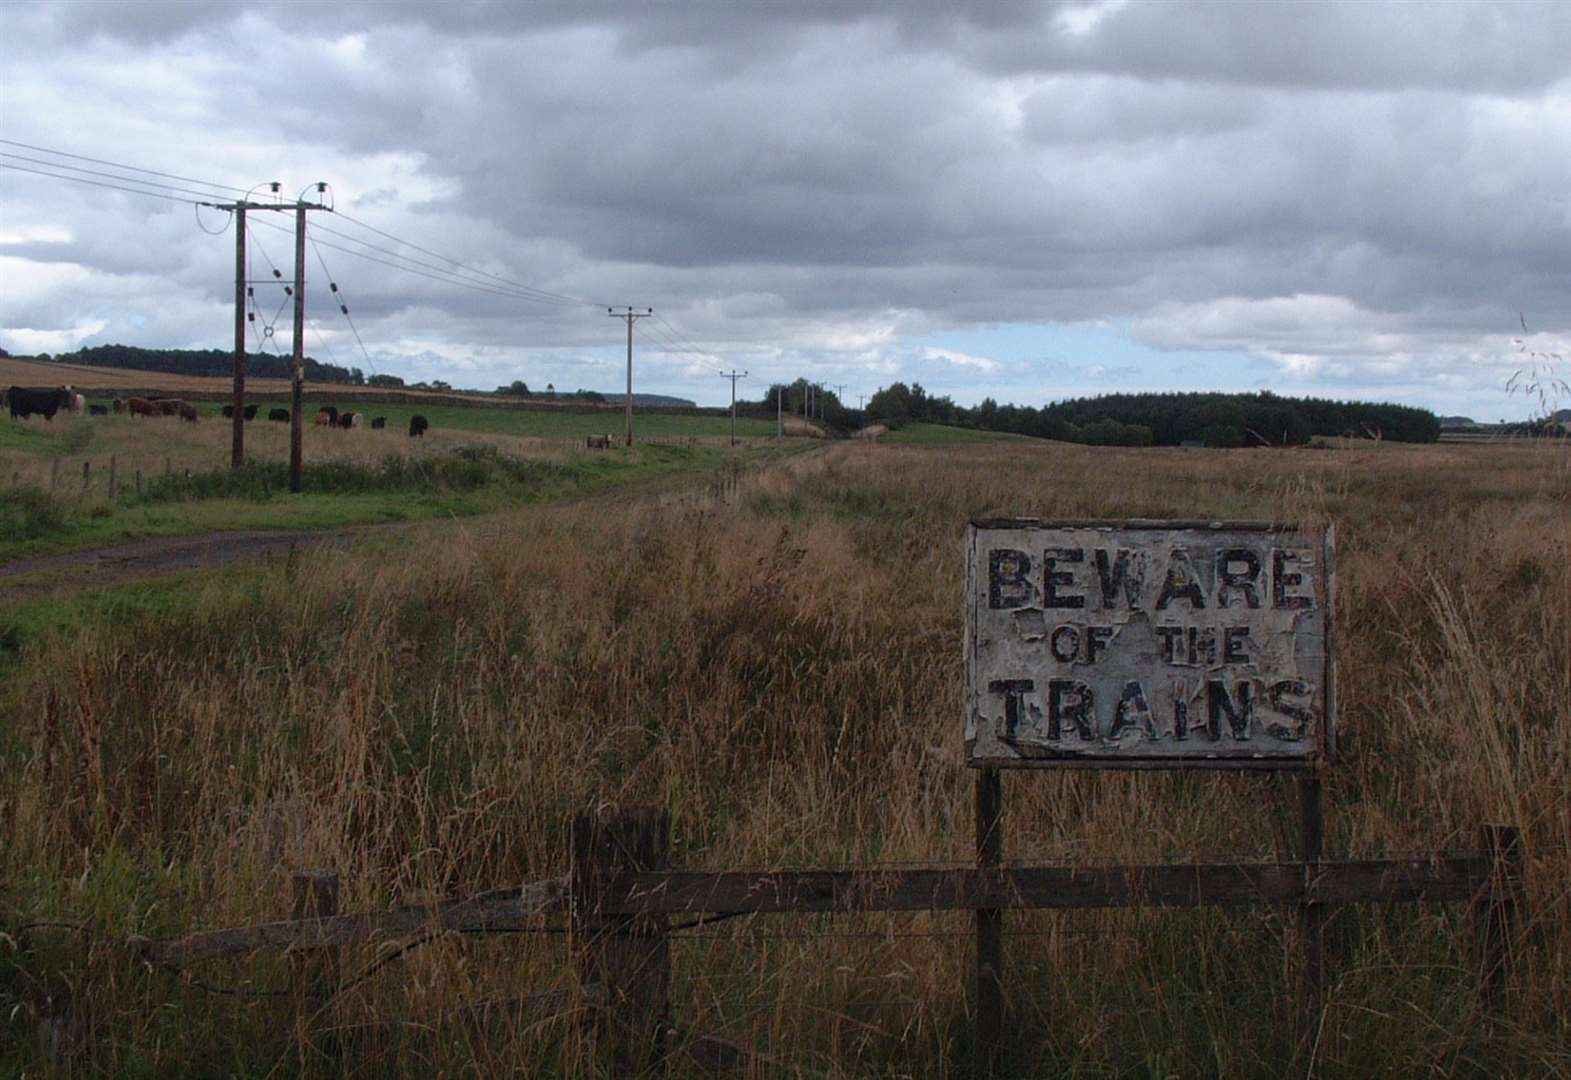 Guide to railway walks is on track to success